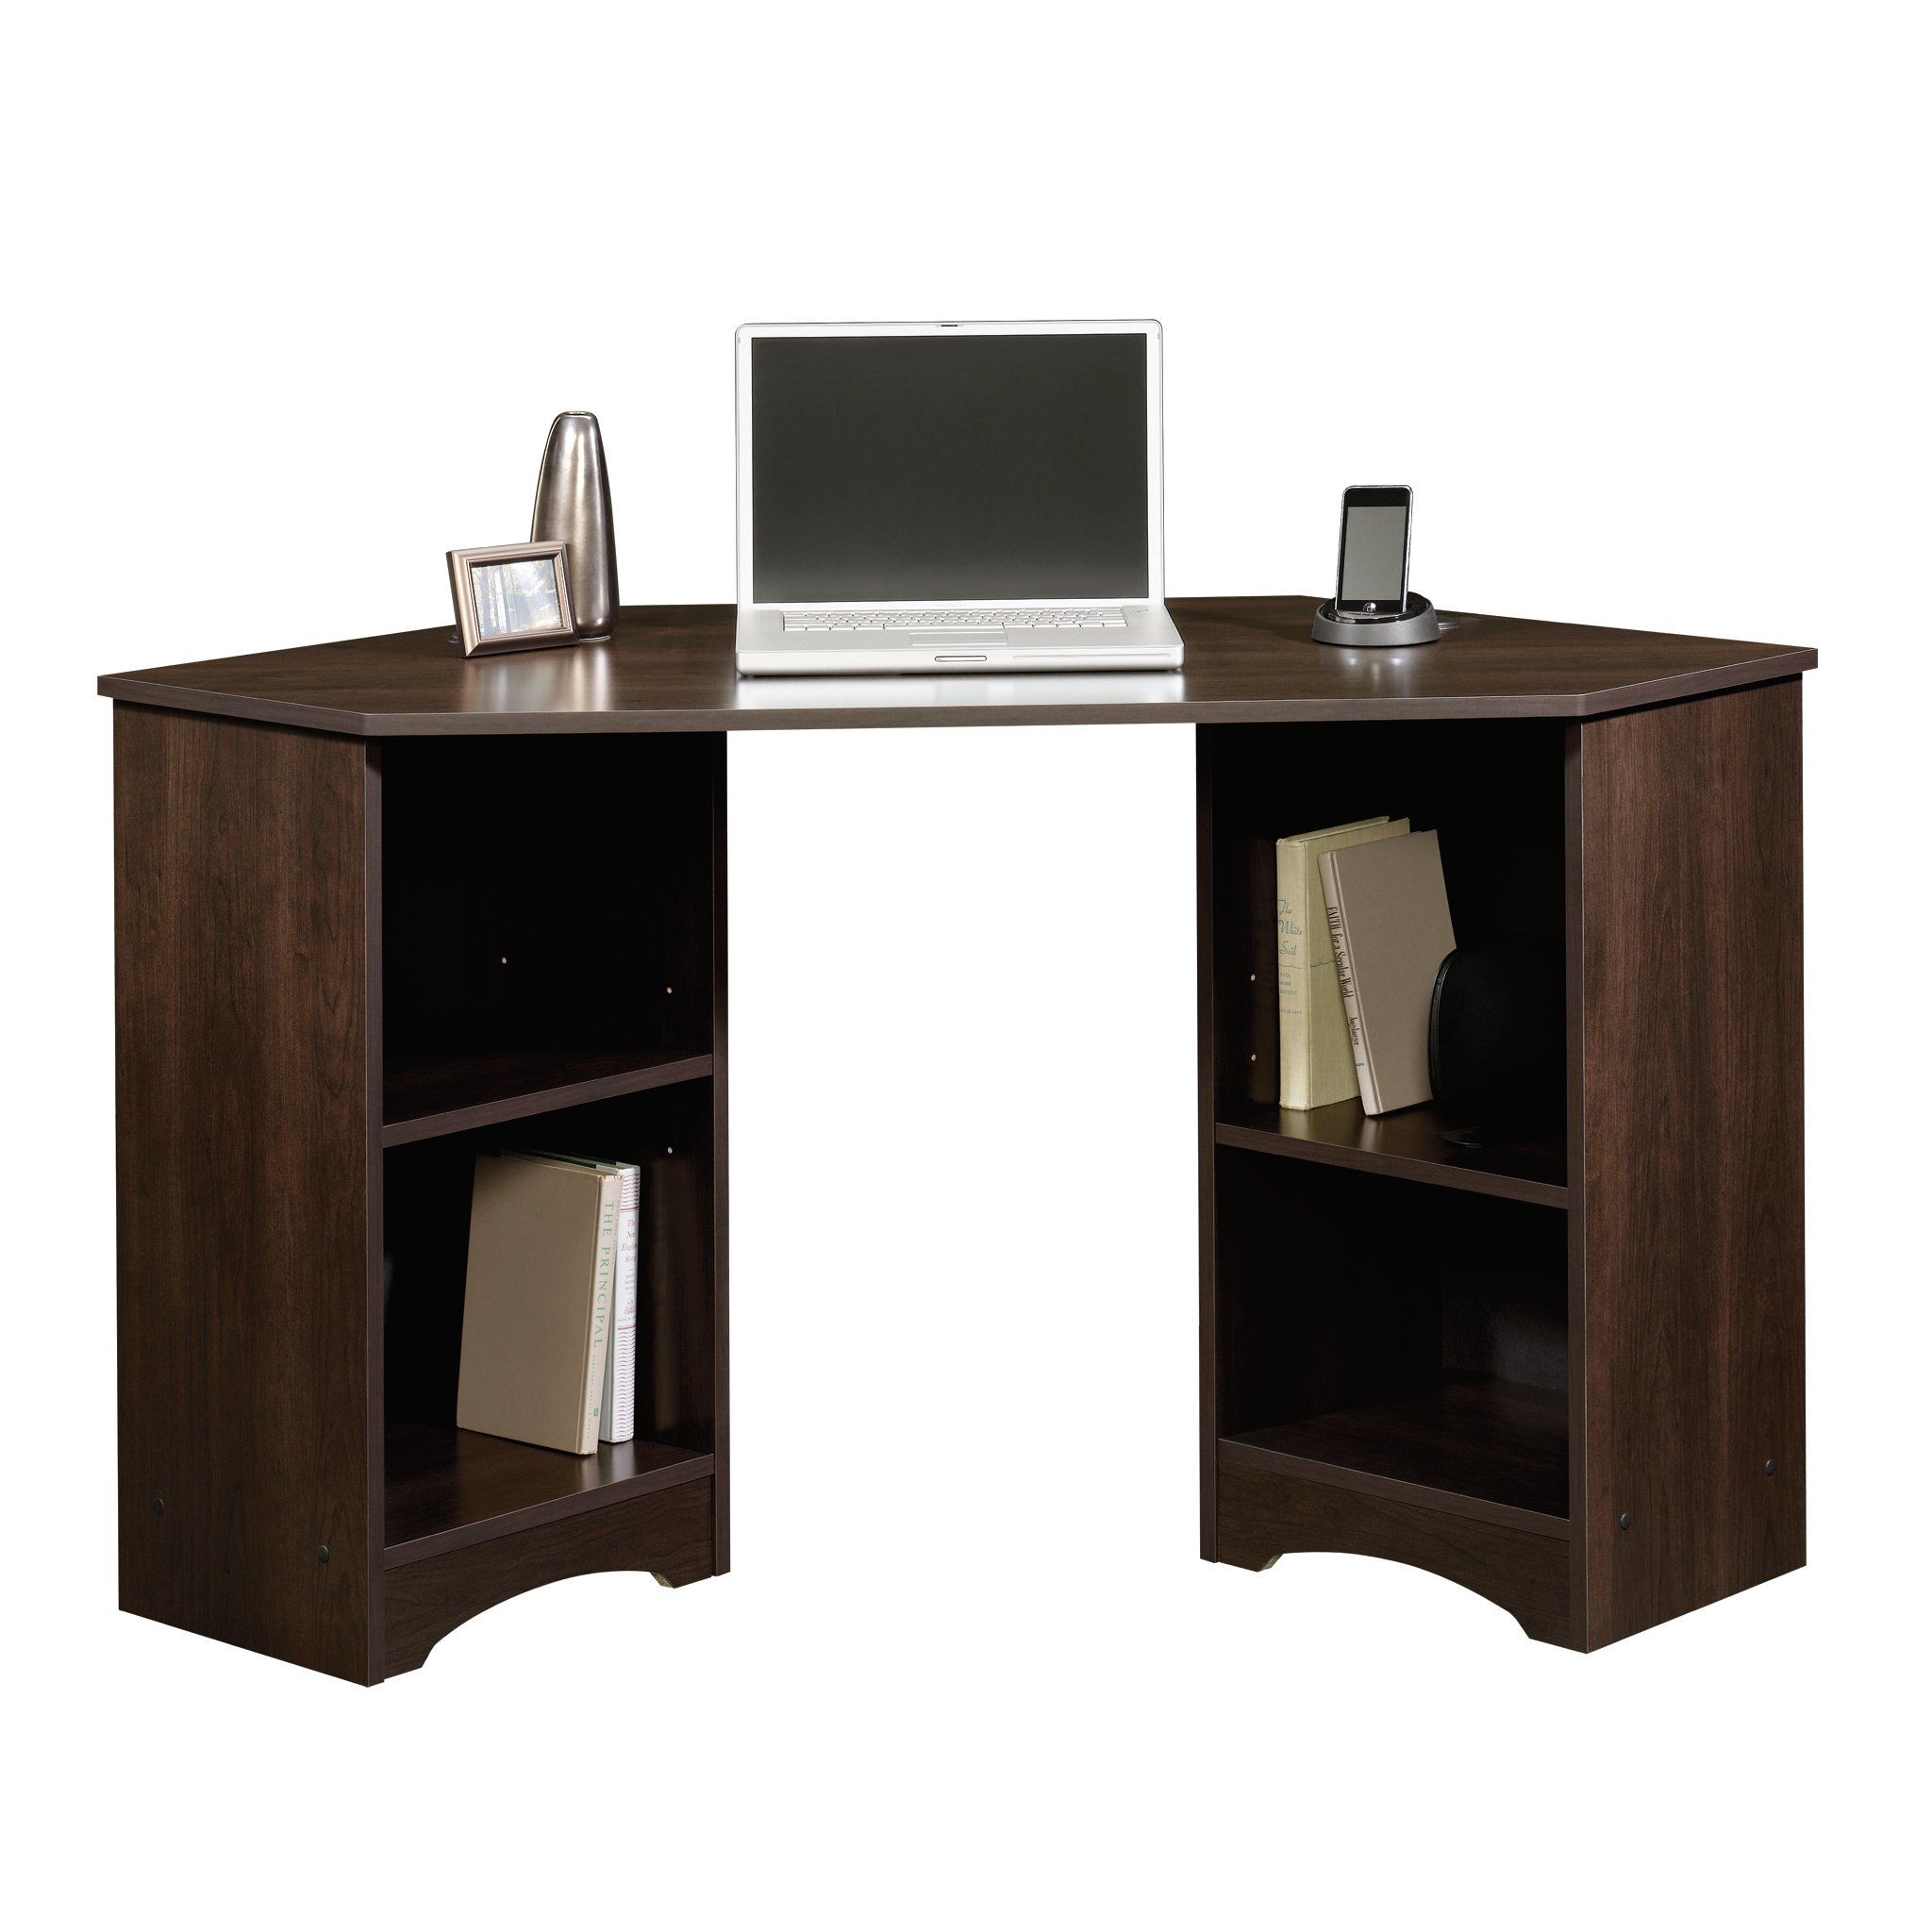 Sauder Beginnings Corner Desk, Cherry